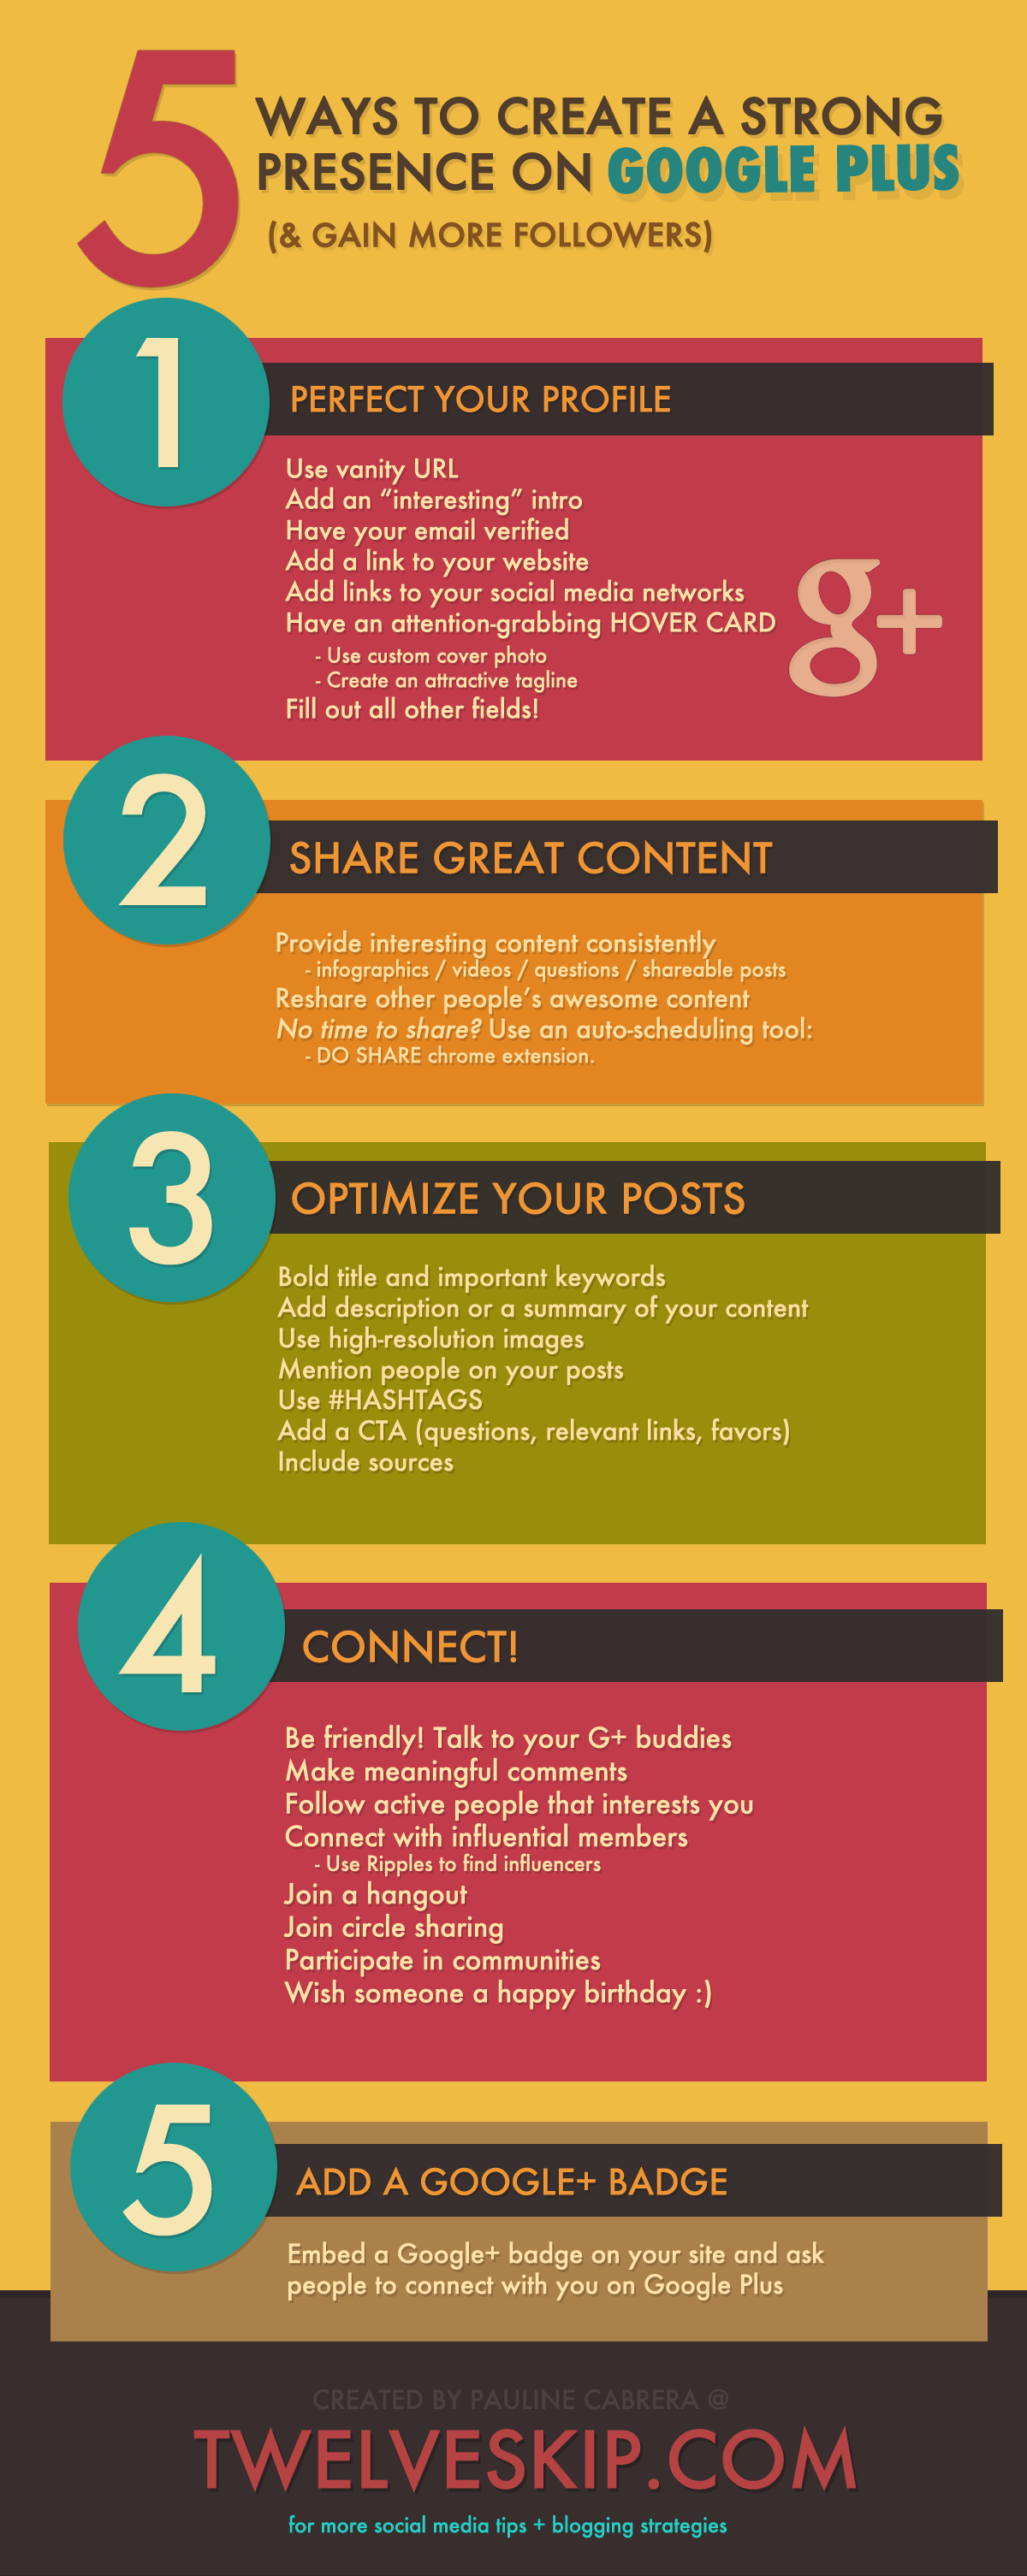 Ways to Create Strong Presence on Google Plus to Grow Followers